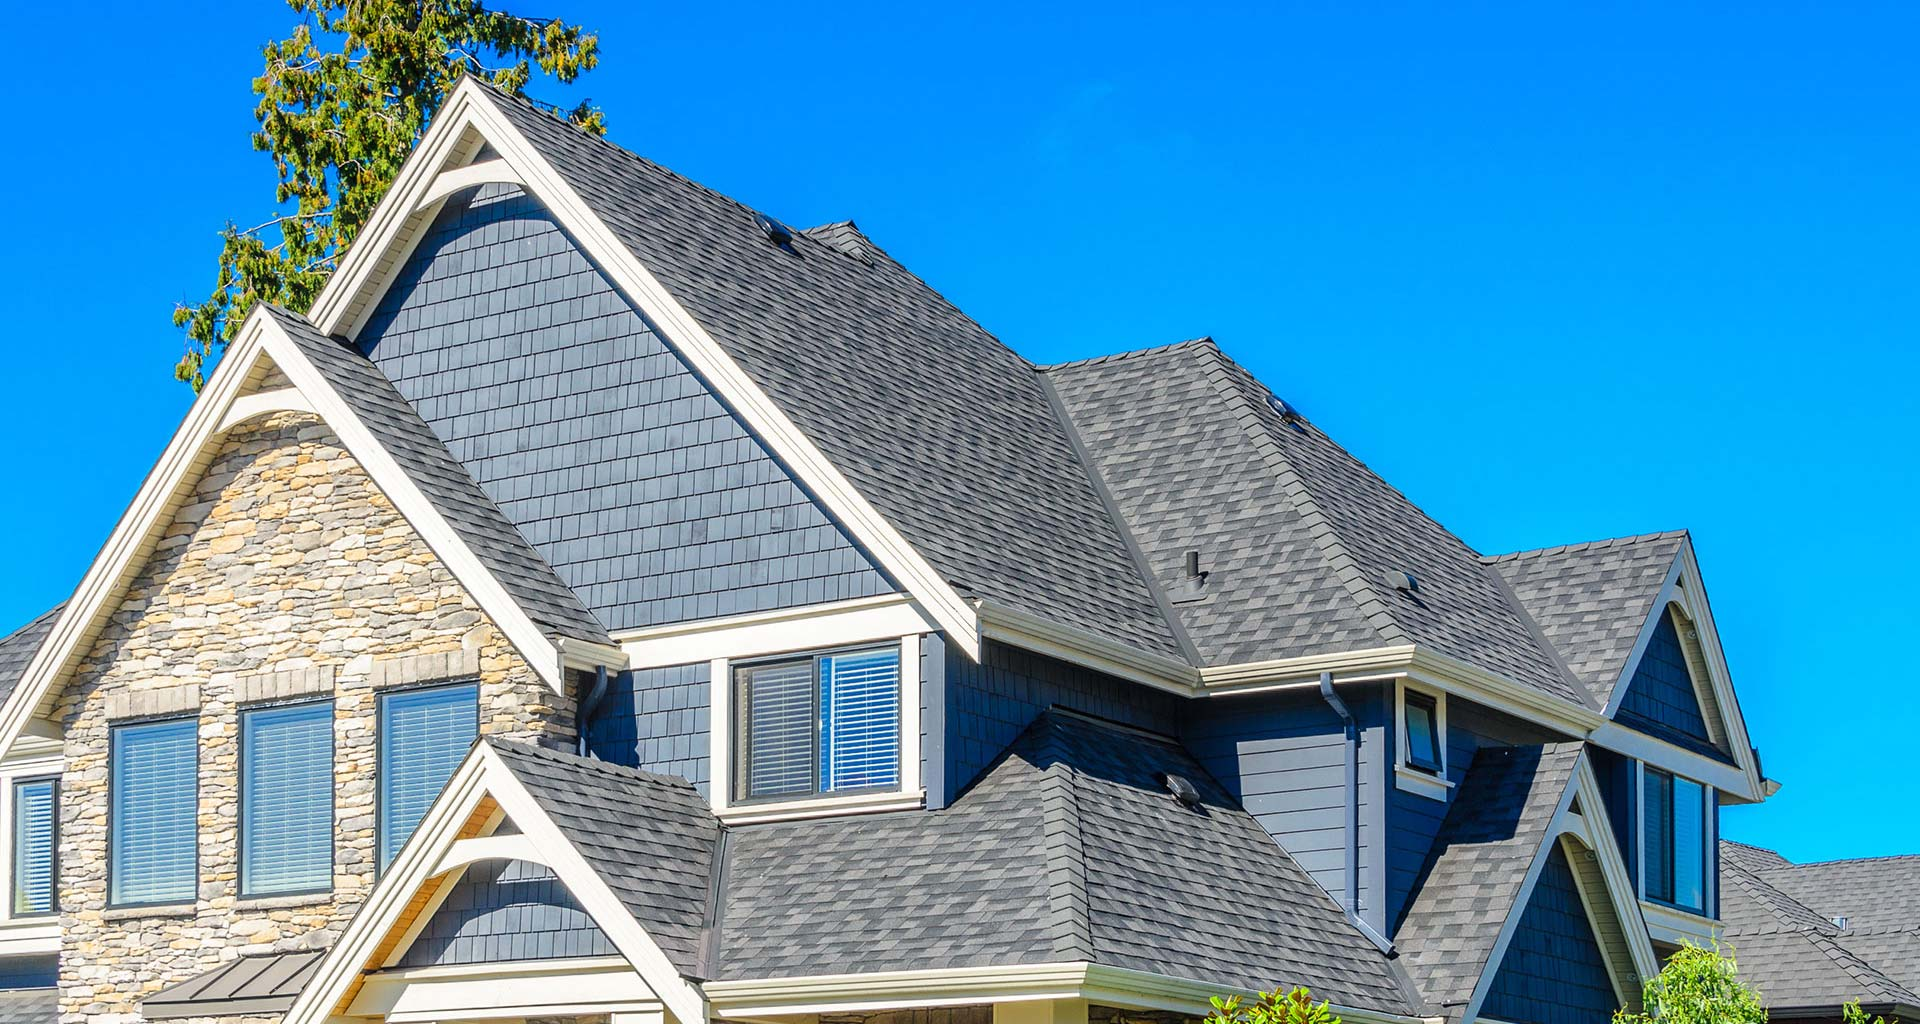 Spring Roof Maintenance Tips From Garner Roofing, Your Baltimore Roofer